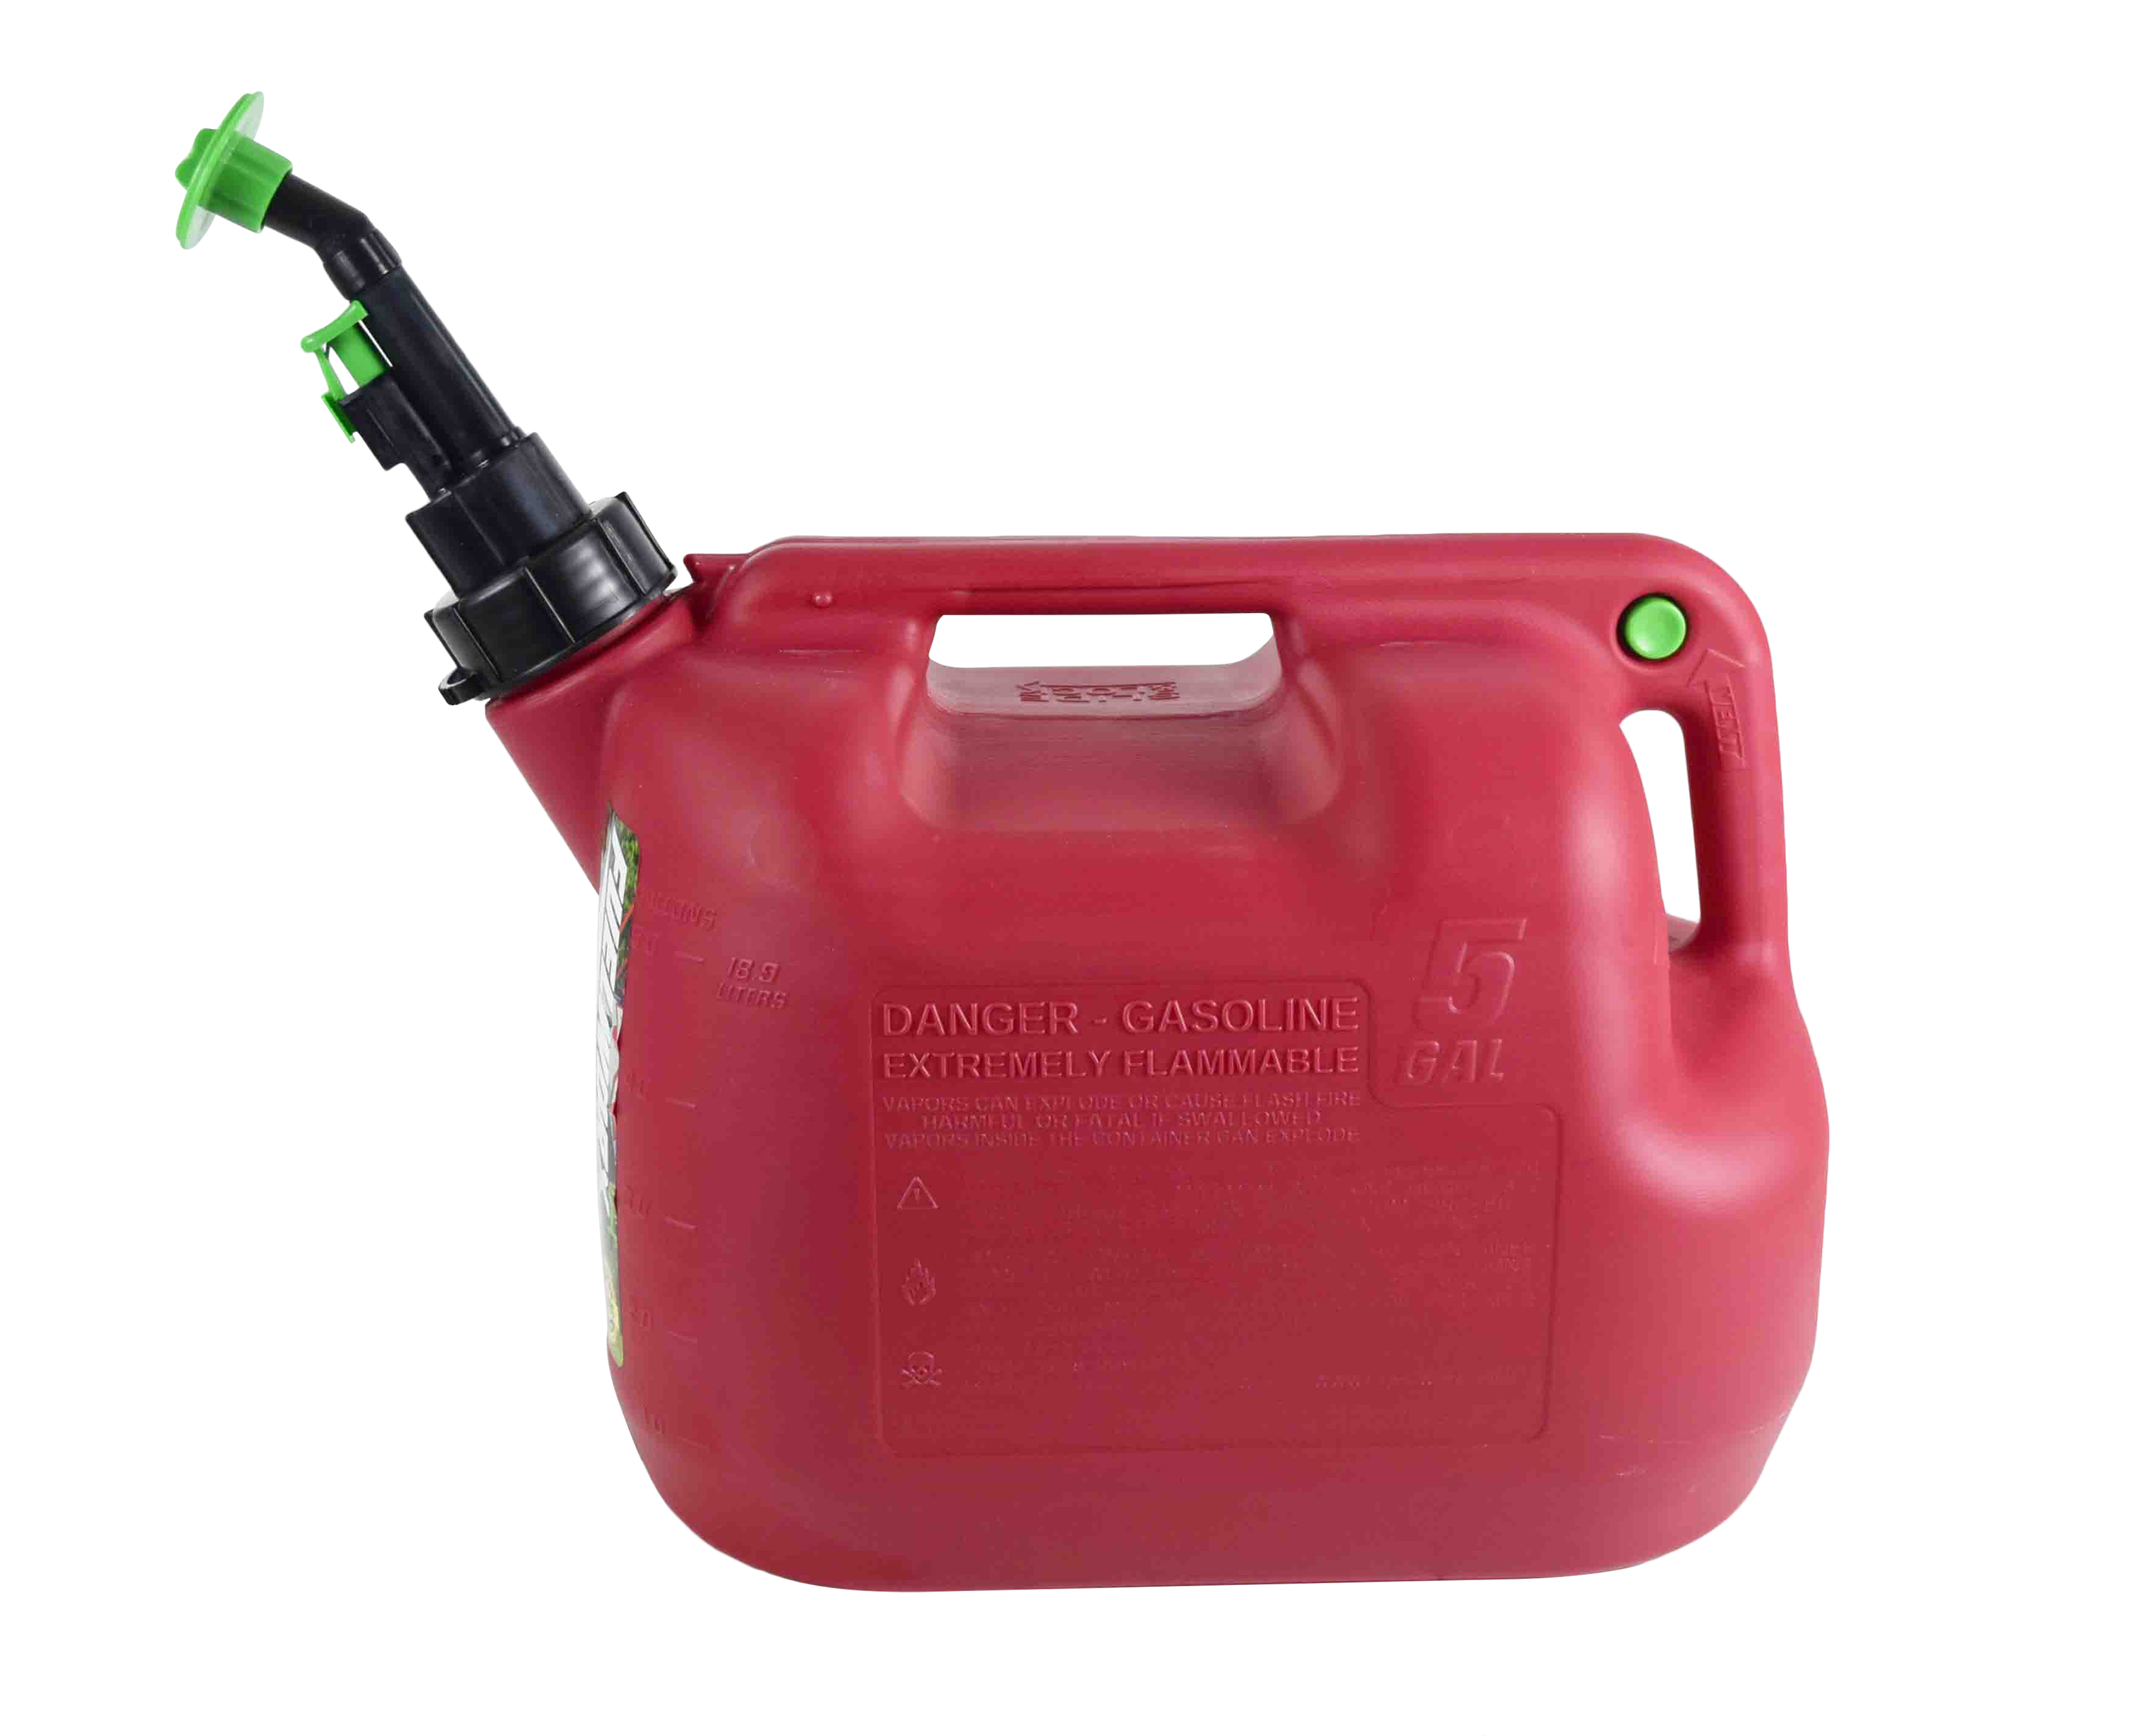 Fuelworx-Red-5-Gallon-Stackable-Fast-Pour-Gas-Fuel-Can-CARB-Compliant-Made-in-The-USA-5-Gallon-Gas-Can-2-Pack-image-3